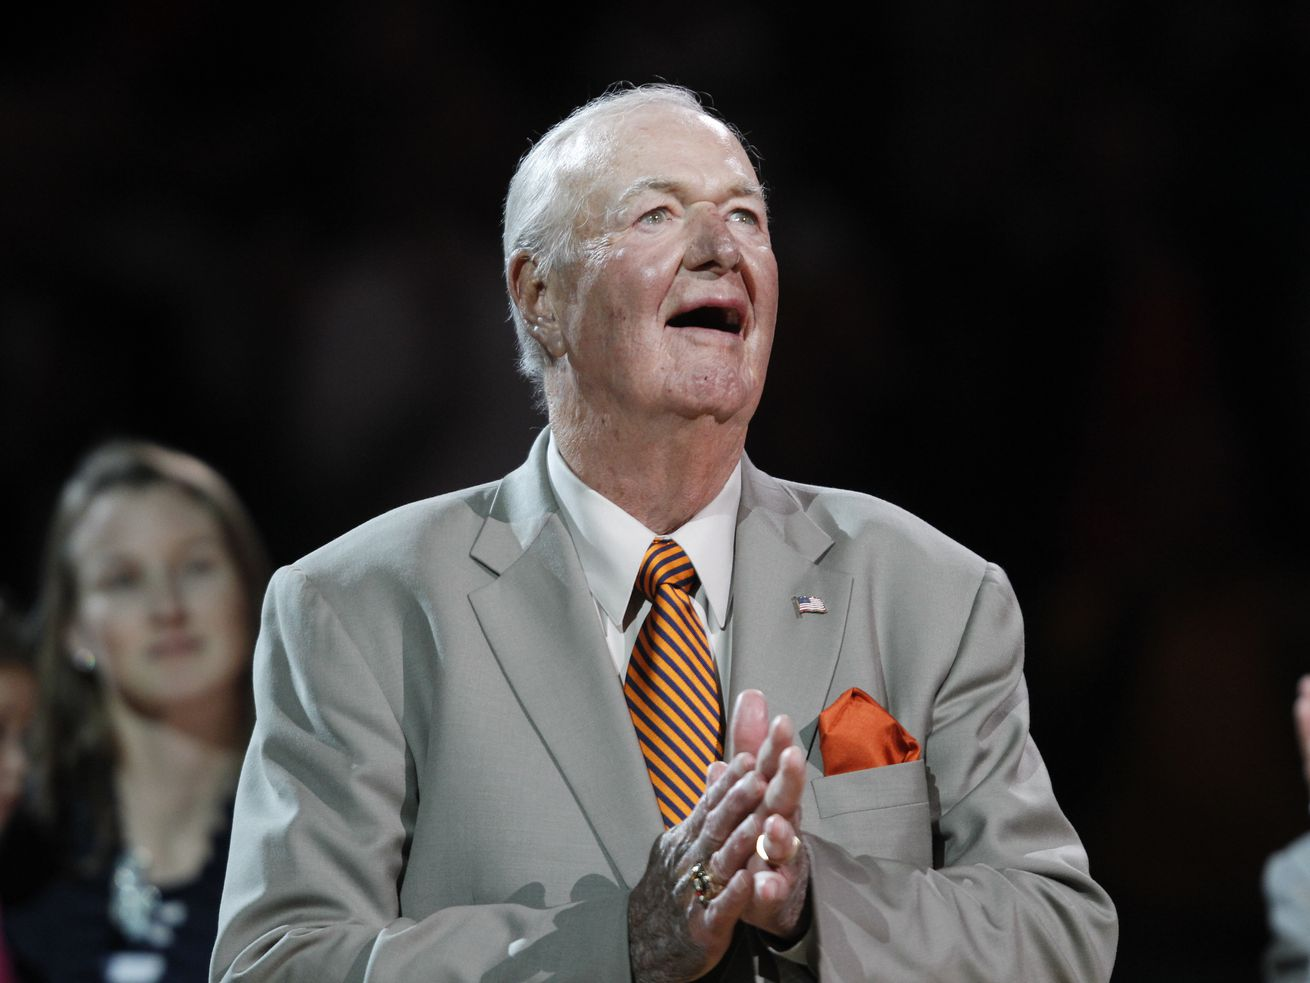 """Bobby """"Slick"""" Leonard, the former NBA player and Hall of Fame coach who won three ABA championships with the Indiana Pacers and spent more than a half century with the organization, has died. He was 88."""